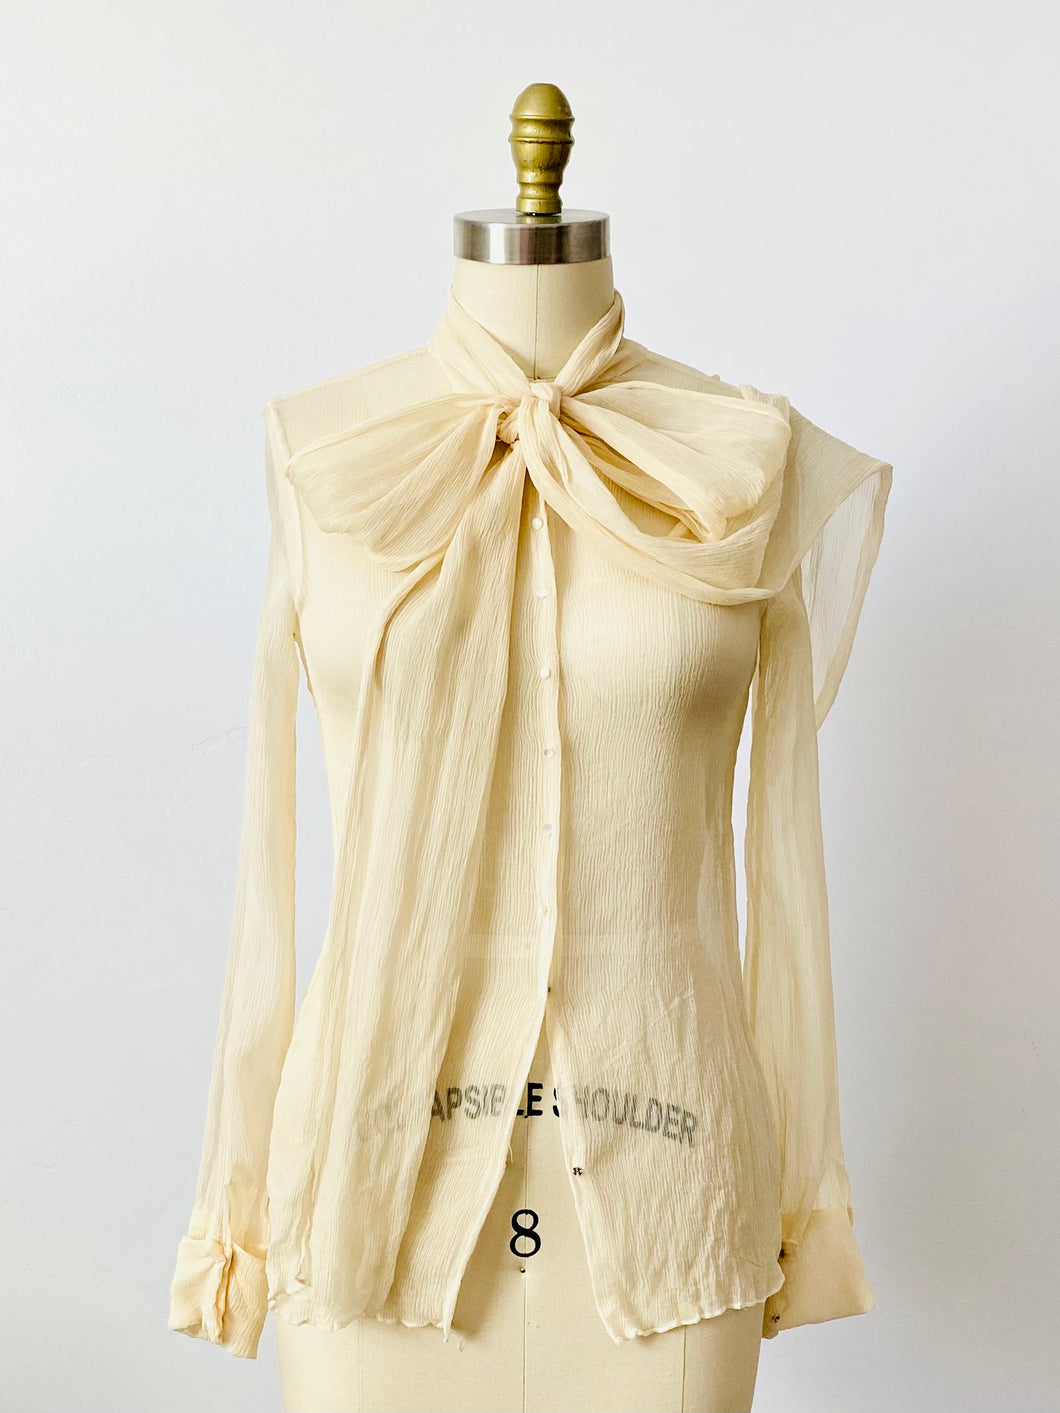 Vintage 1930s cream color silk chiffon blouse